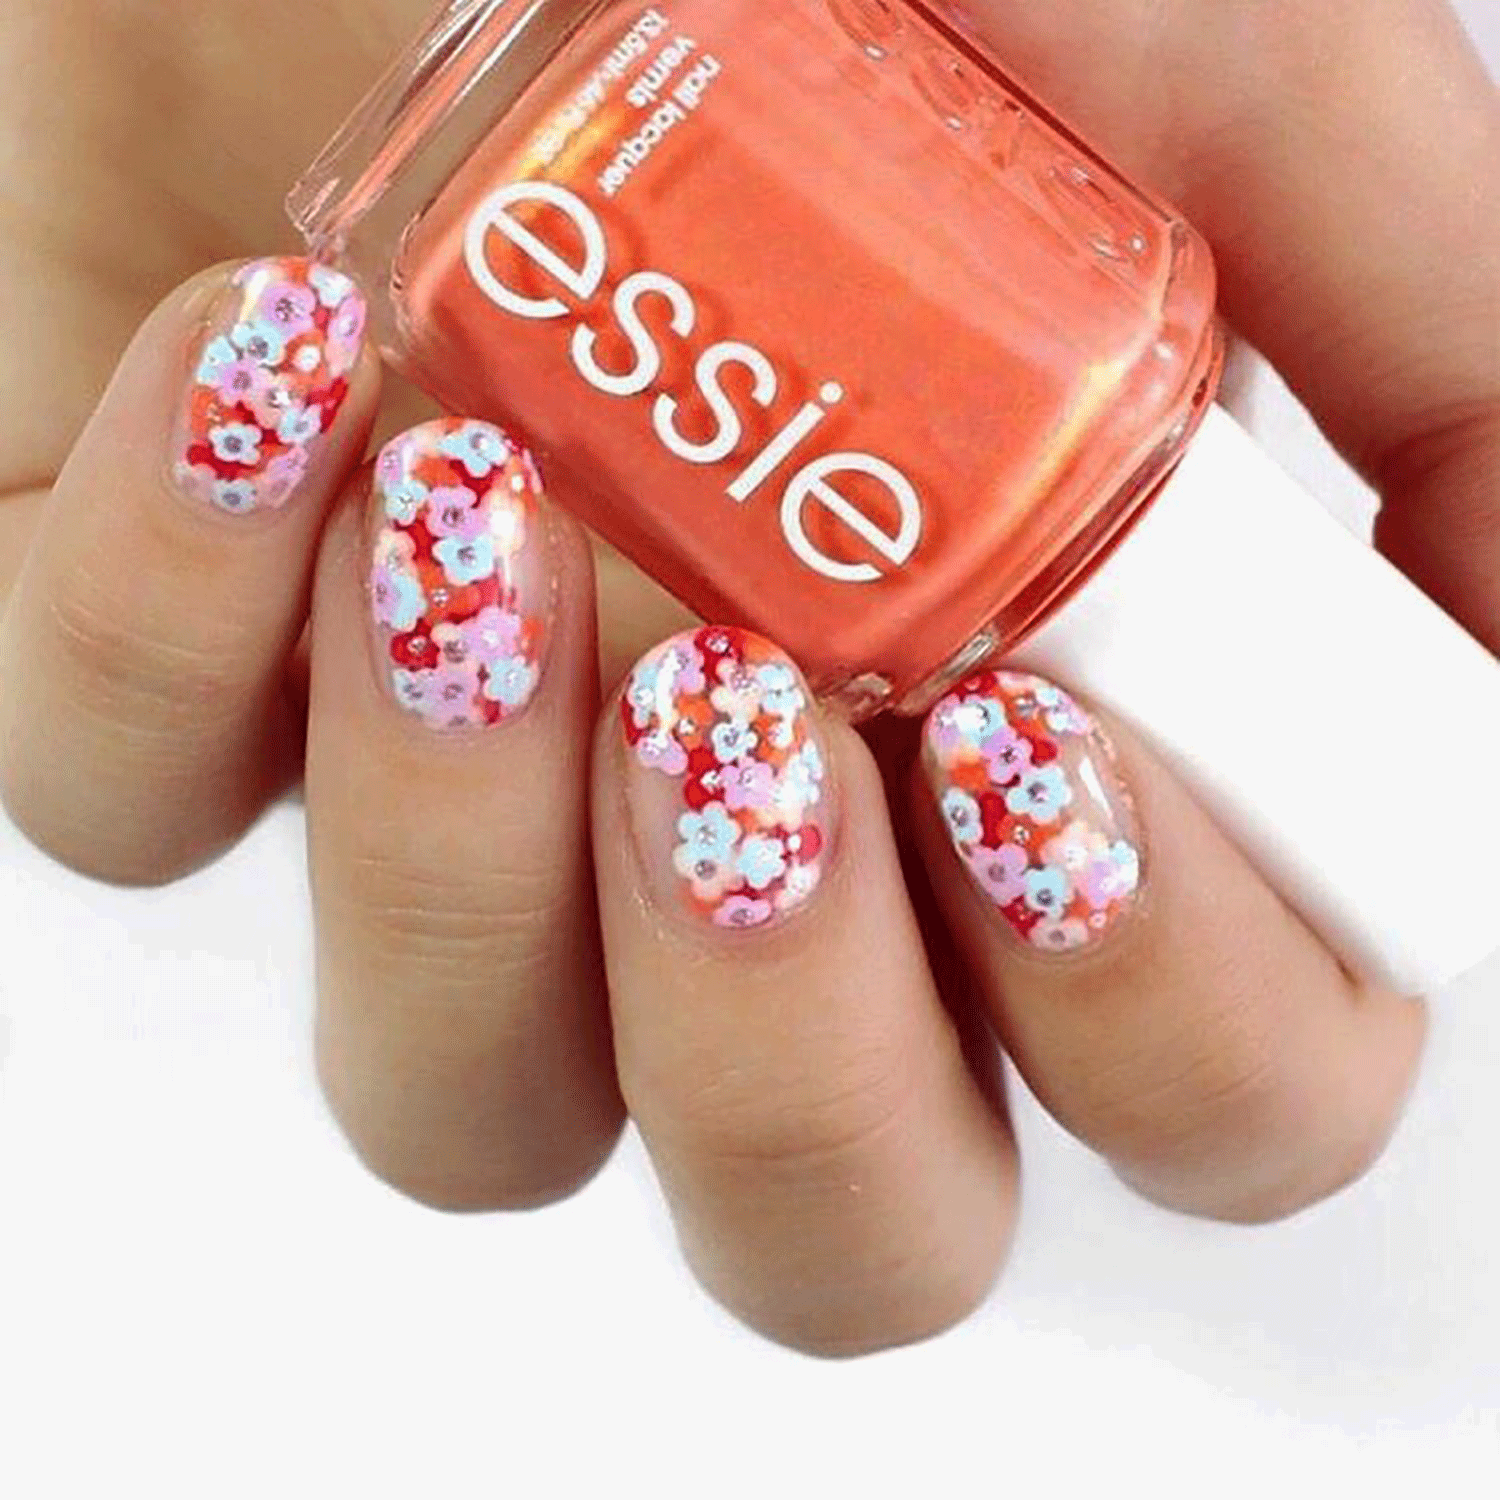 3 Simple Nail Art Designs for Spring 2018   Spring nails, Simple ...